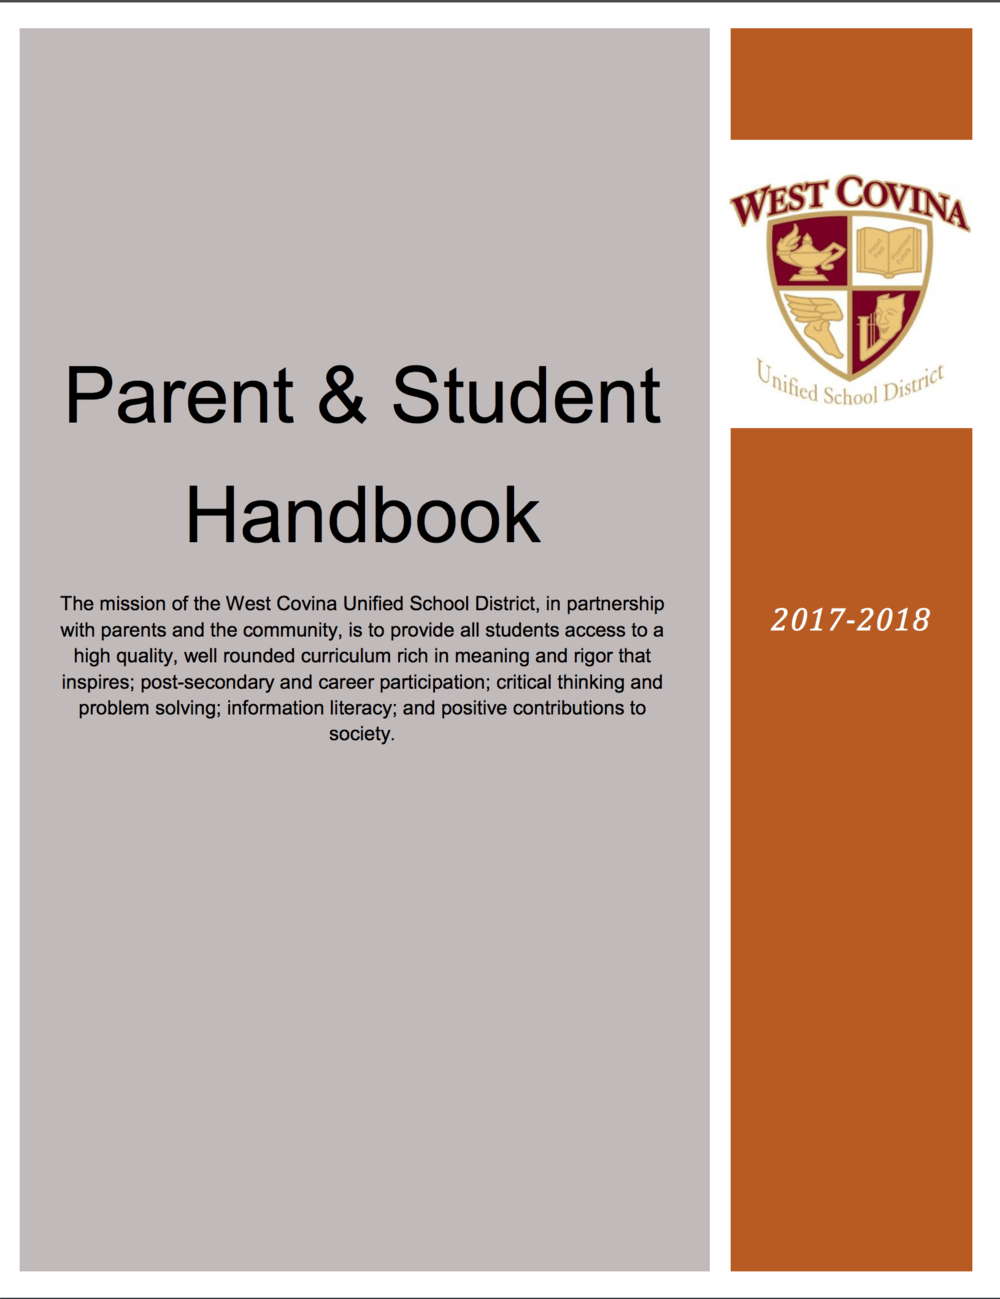 Parent and student handbook for the 2017-2018 academic school year